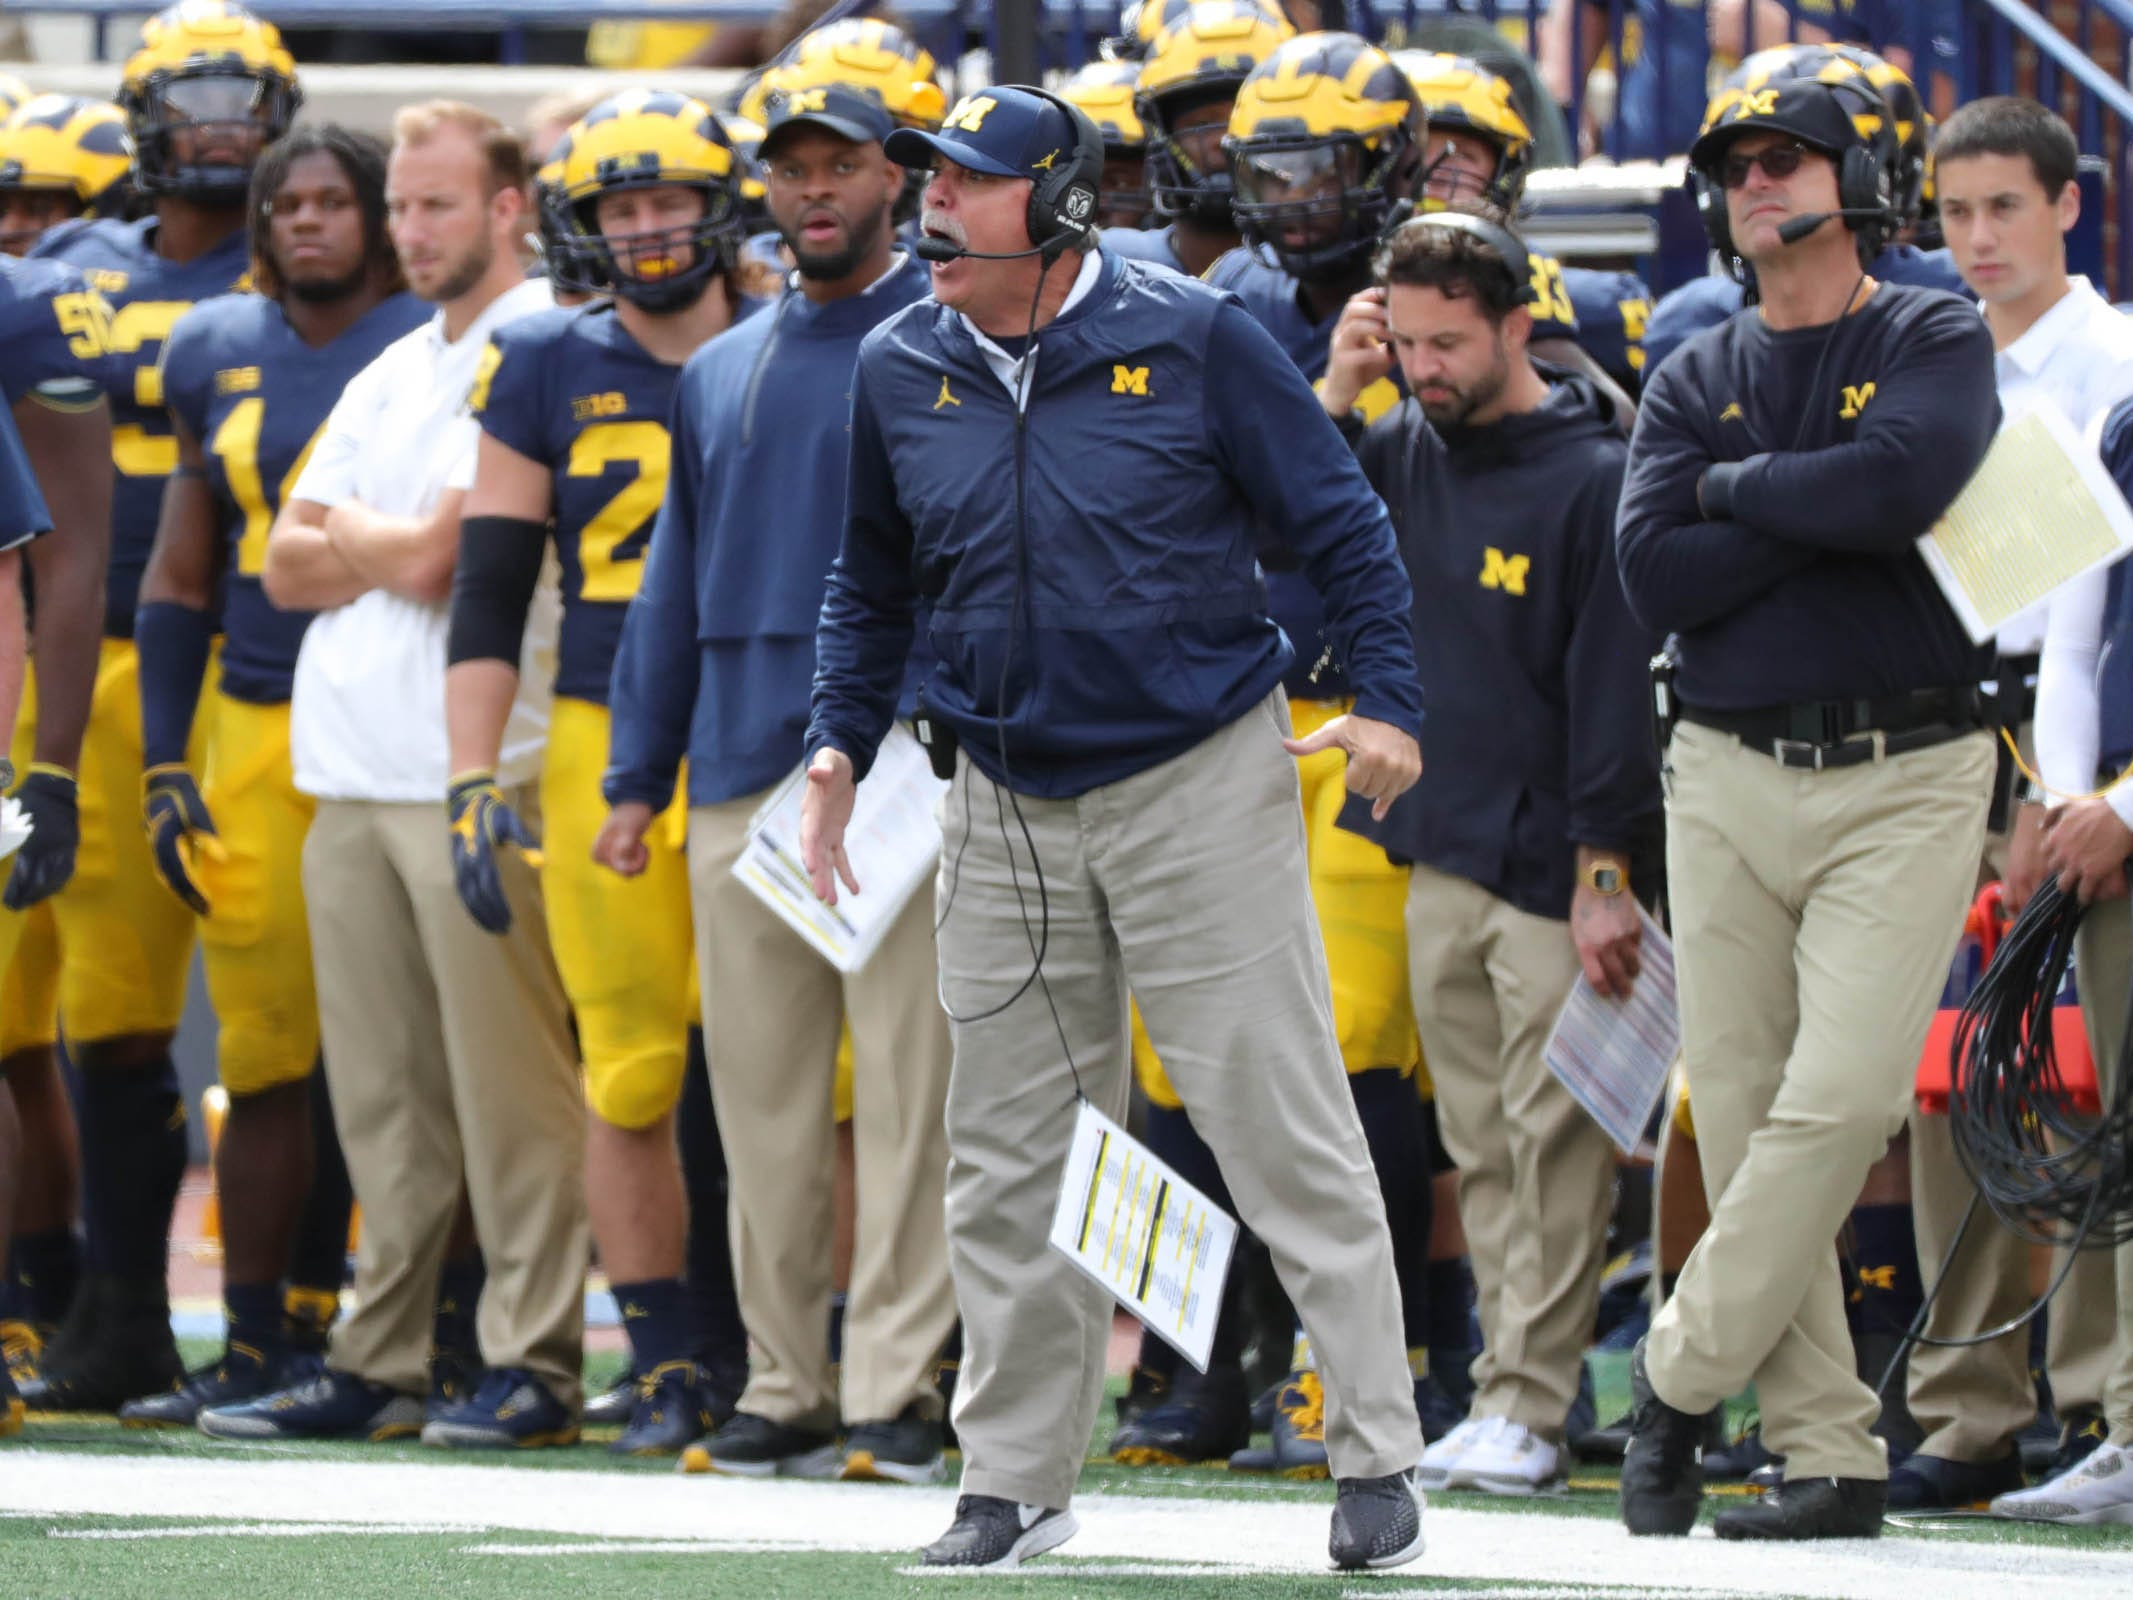 No. 10: Don Brown, Michigan defensive coordinator: $1,300,000. He is completing the second year of a five-year contract and got $300,000 of his total from a retention payment last April. That payment is scheduled to increase to $400,000 in 2019, and his total annual pay is set to remain at $1.4 million for the rest of his deal.